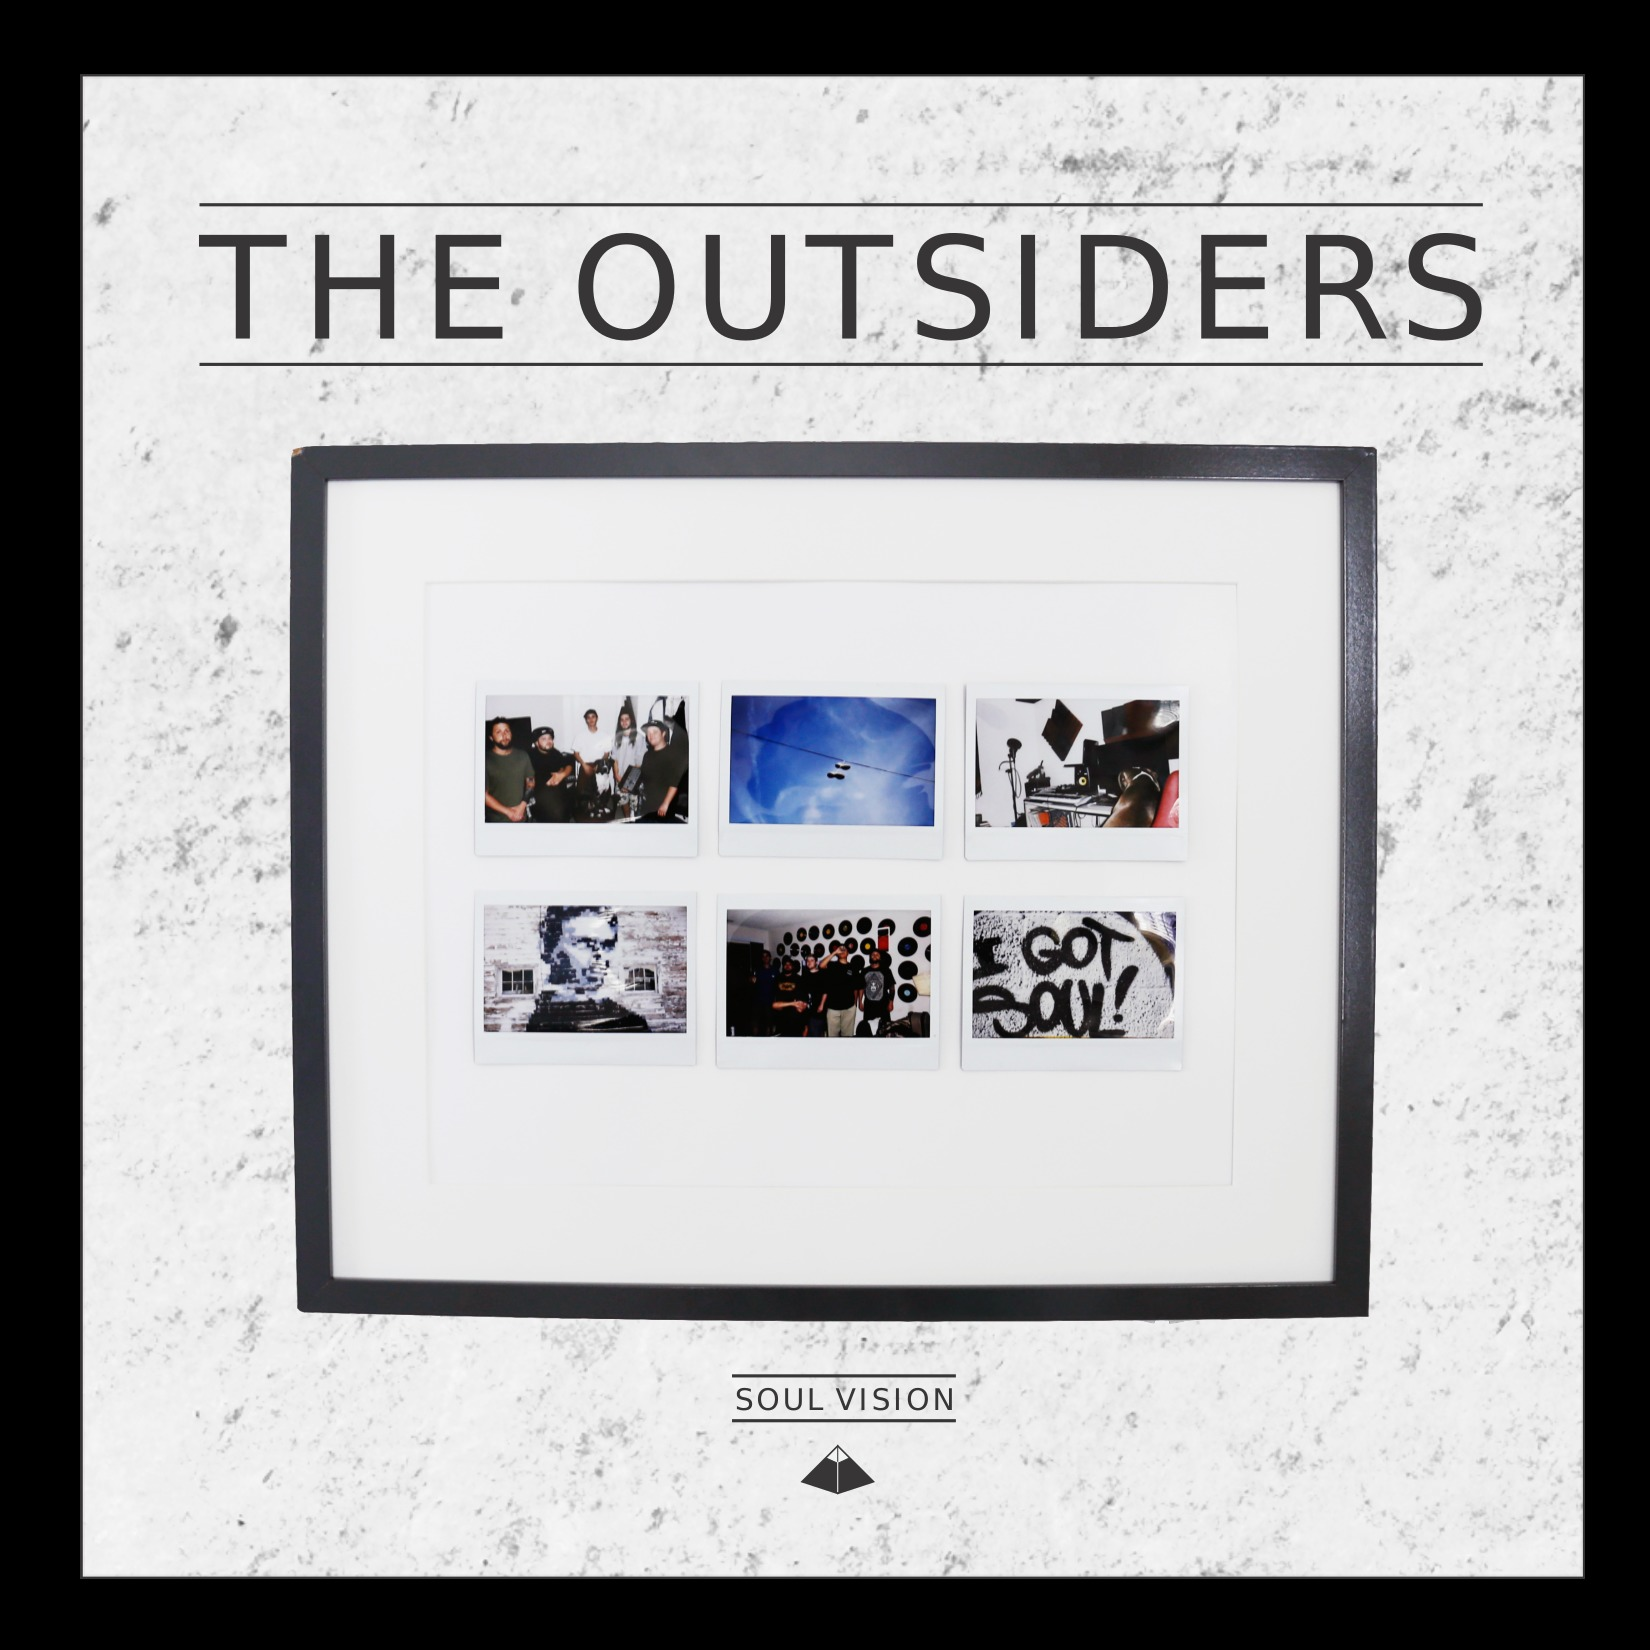 The Outsiders: Soul Vision